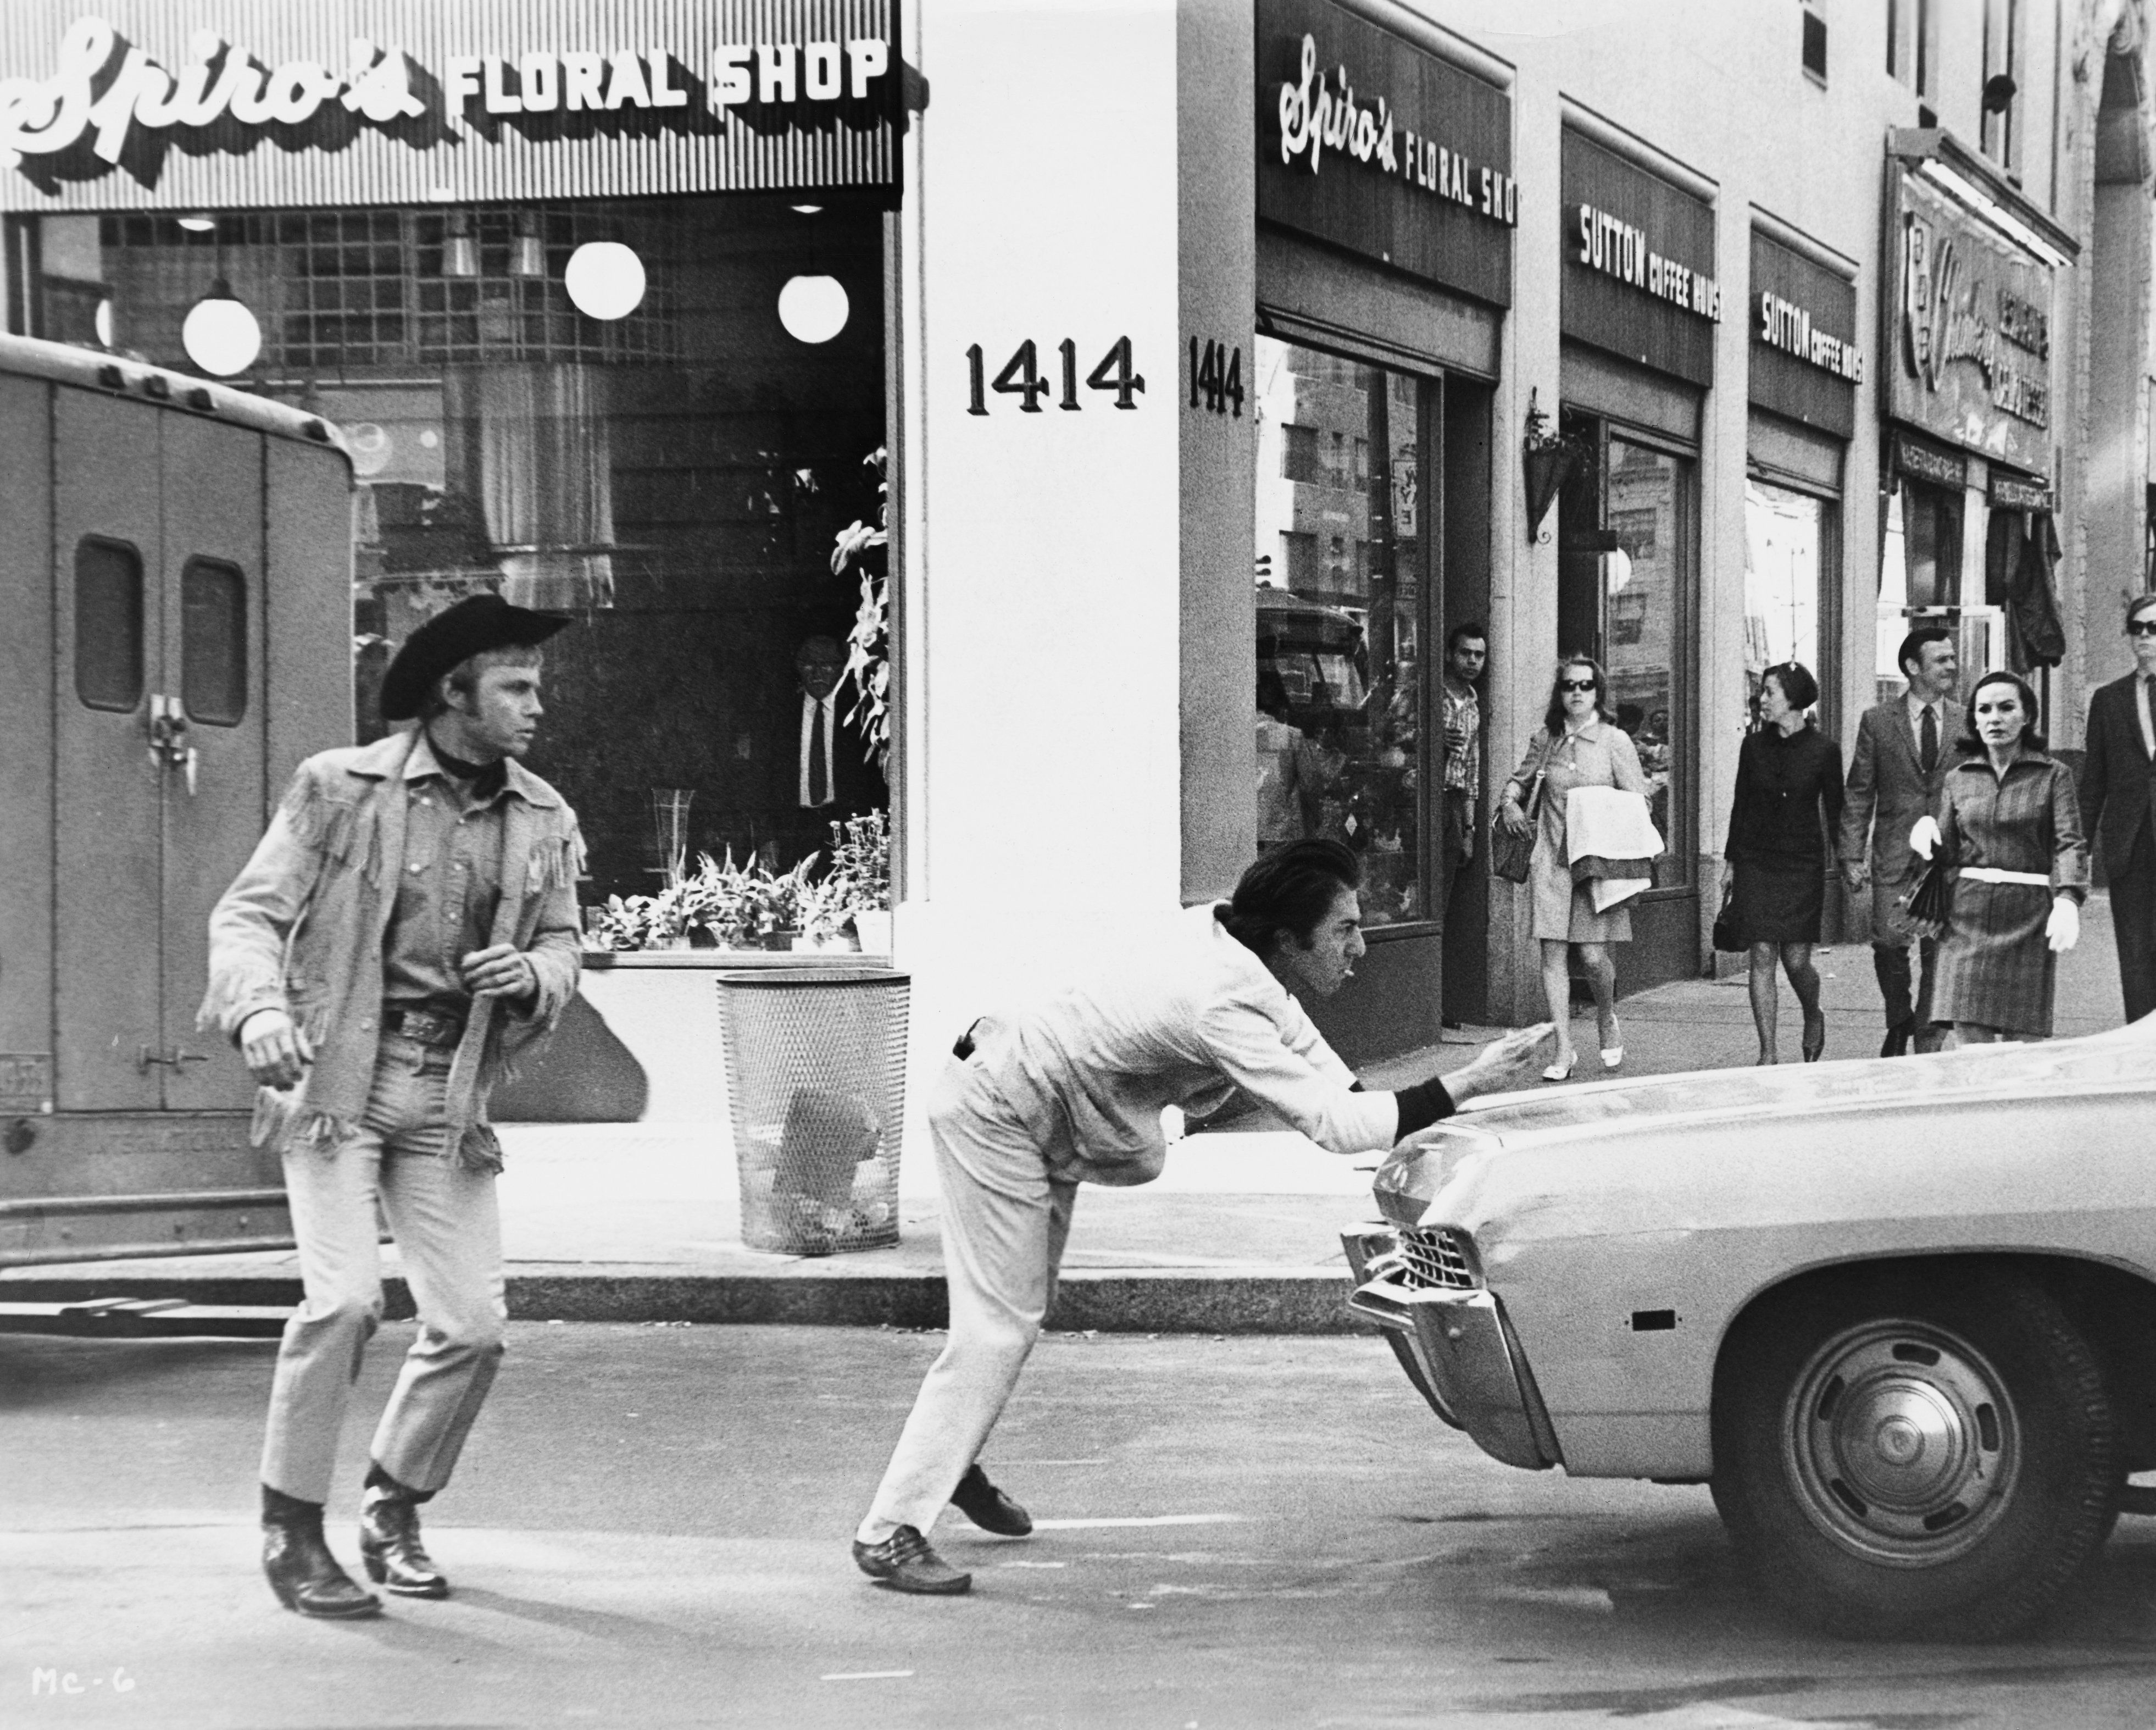 Joe Buck (Jon Voight) and Ratso Rizzo (Dustin Hoffman) rush across a street in front of traffic in Midnight Cowboy. (Photo by �� John Springer Collection/CORBIS/Corbis via Getty Images)